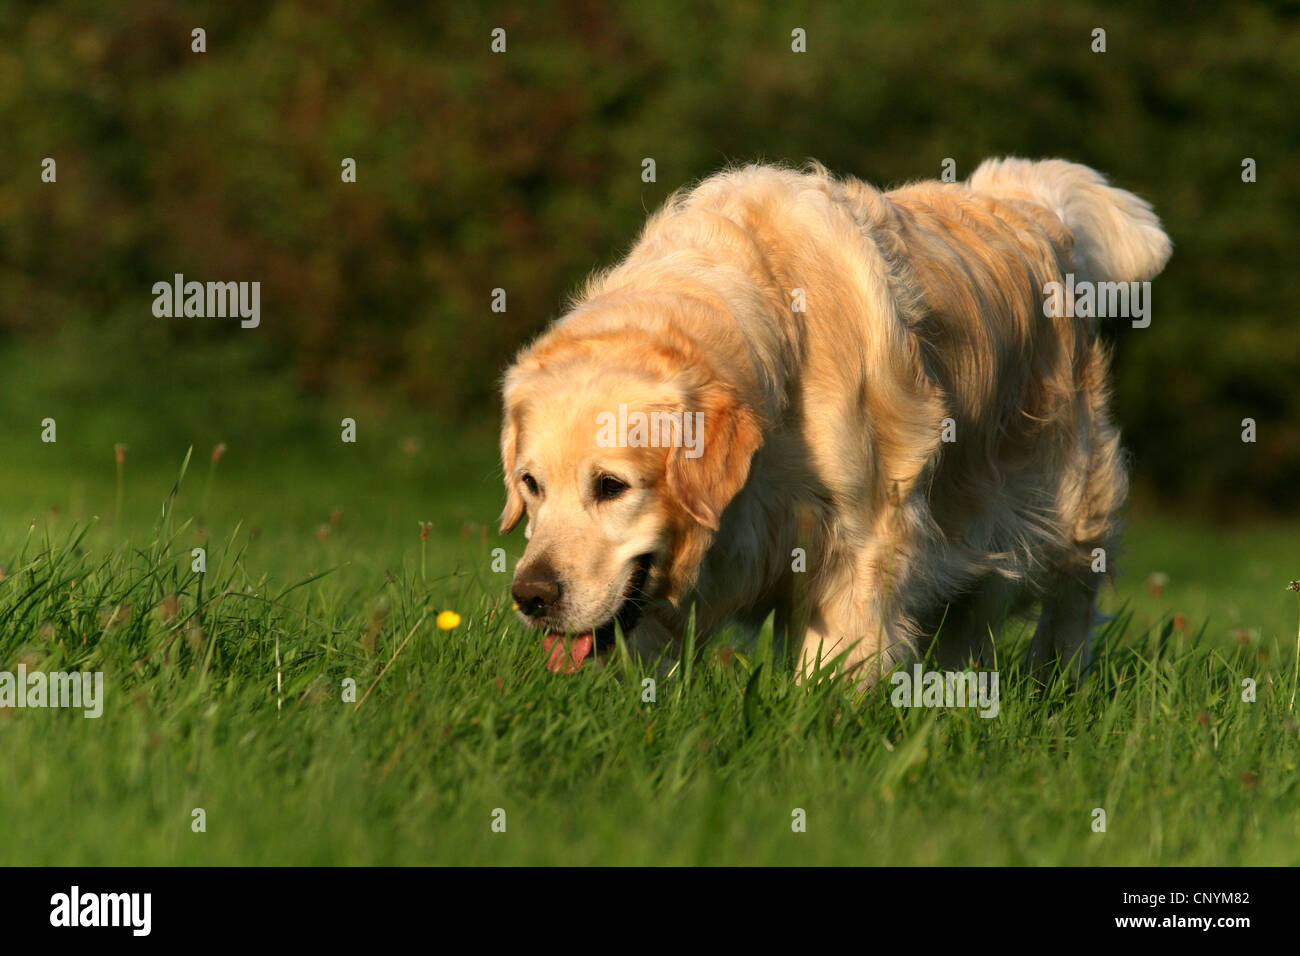 Golden Retriever (Canis lupus f. familiaris), 5 years old mal in a meadow - Stock Image